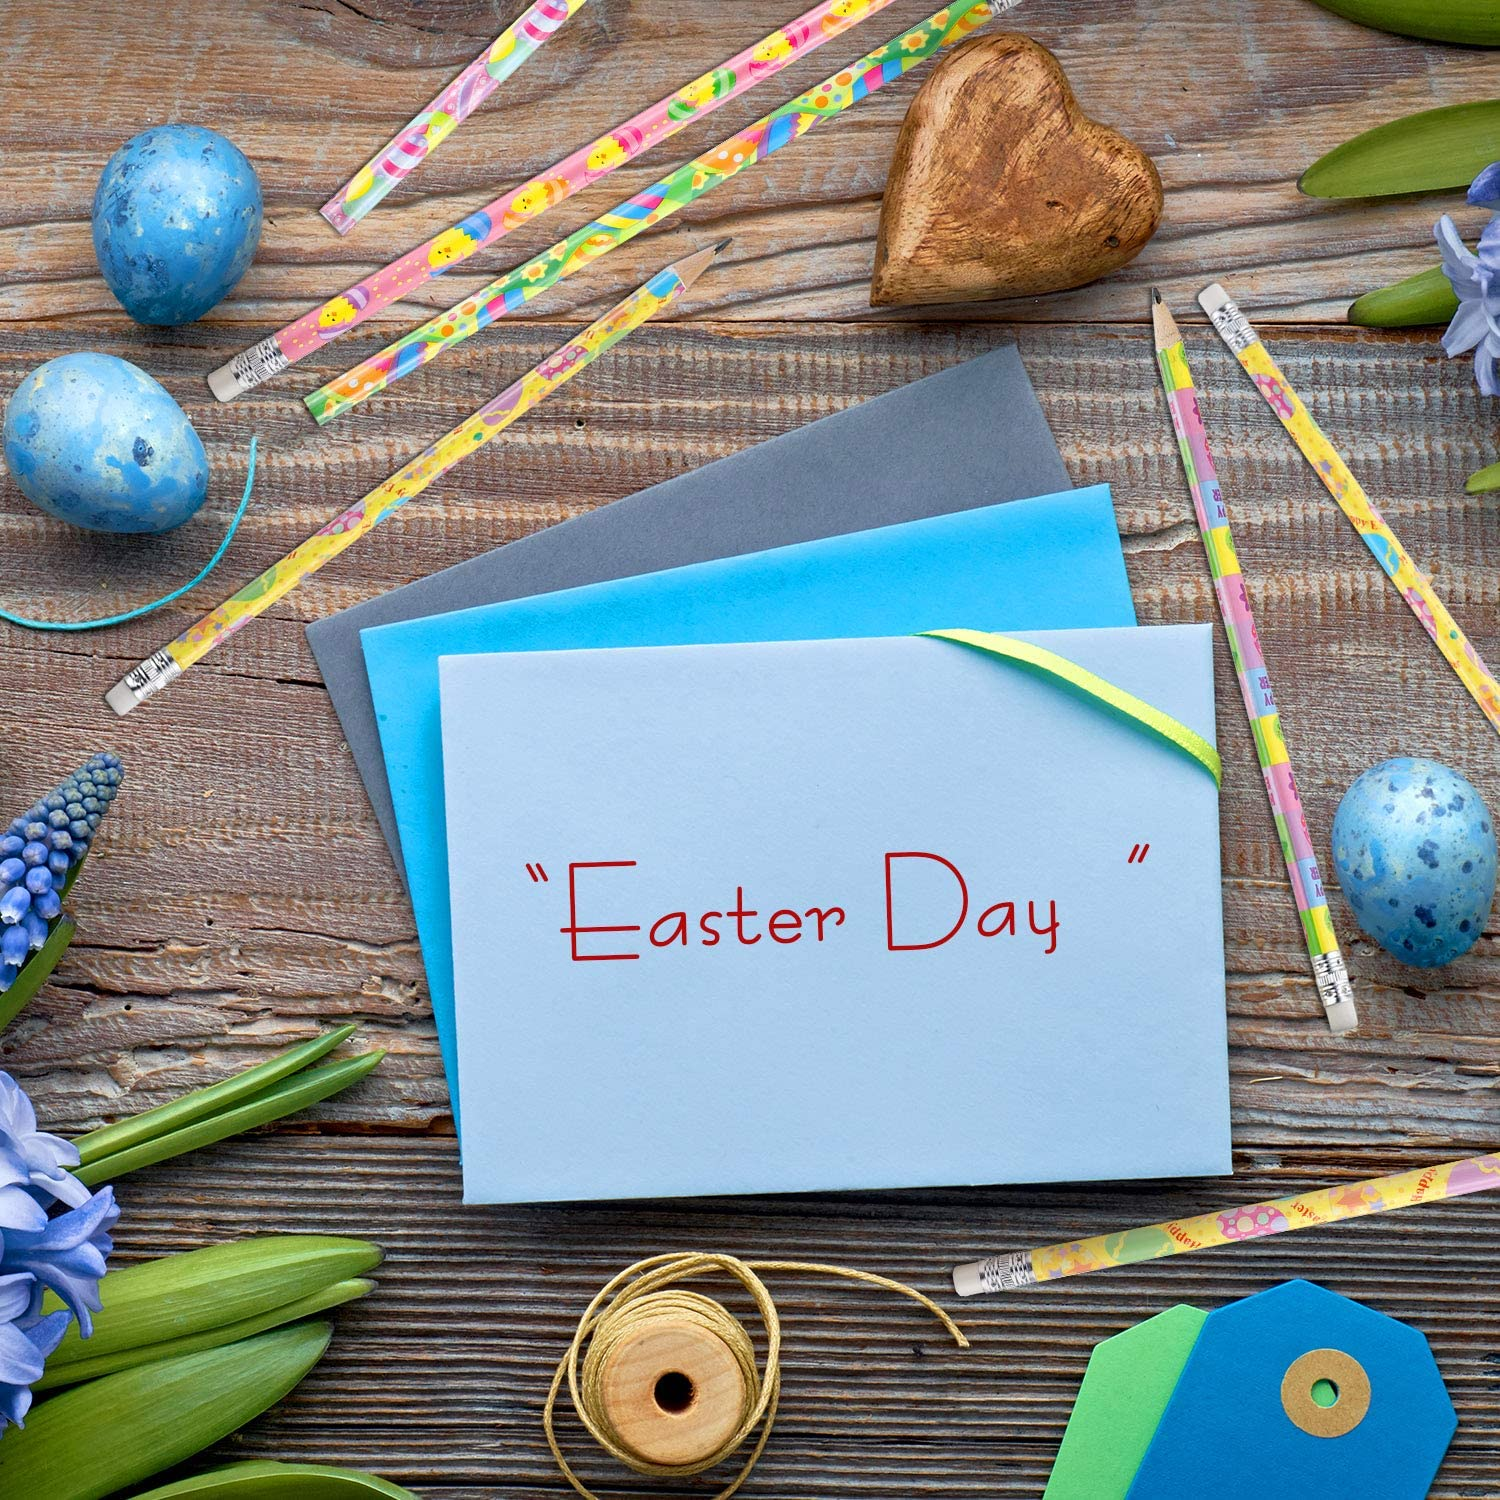 Outus 48 Pieces Easter Pencils with Eraser Holiday Pencils Easter Wood Pencils with Easter Elements for Easter Gifts Party Reward Supplies 8 Styles